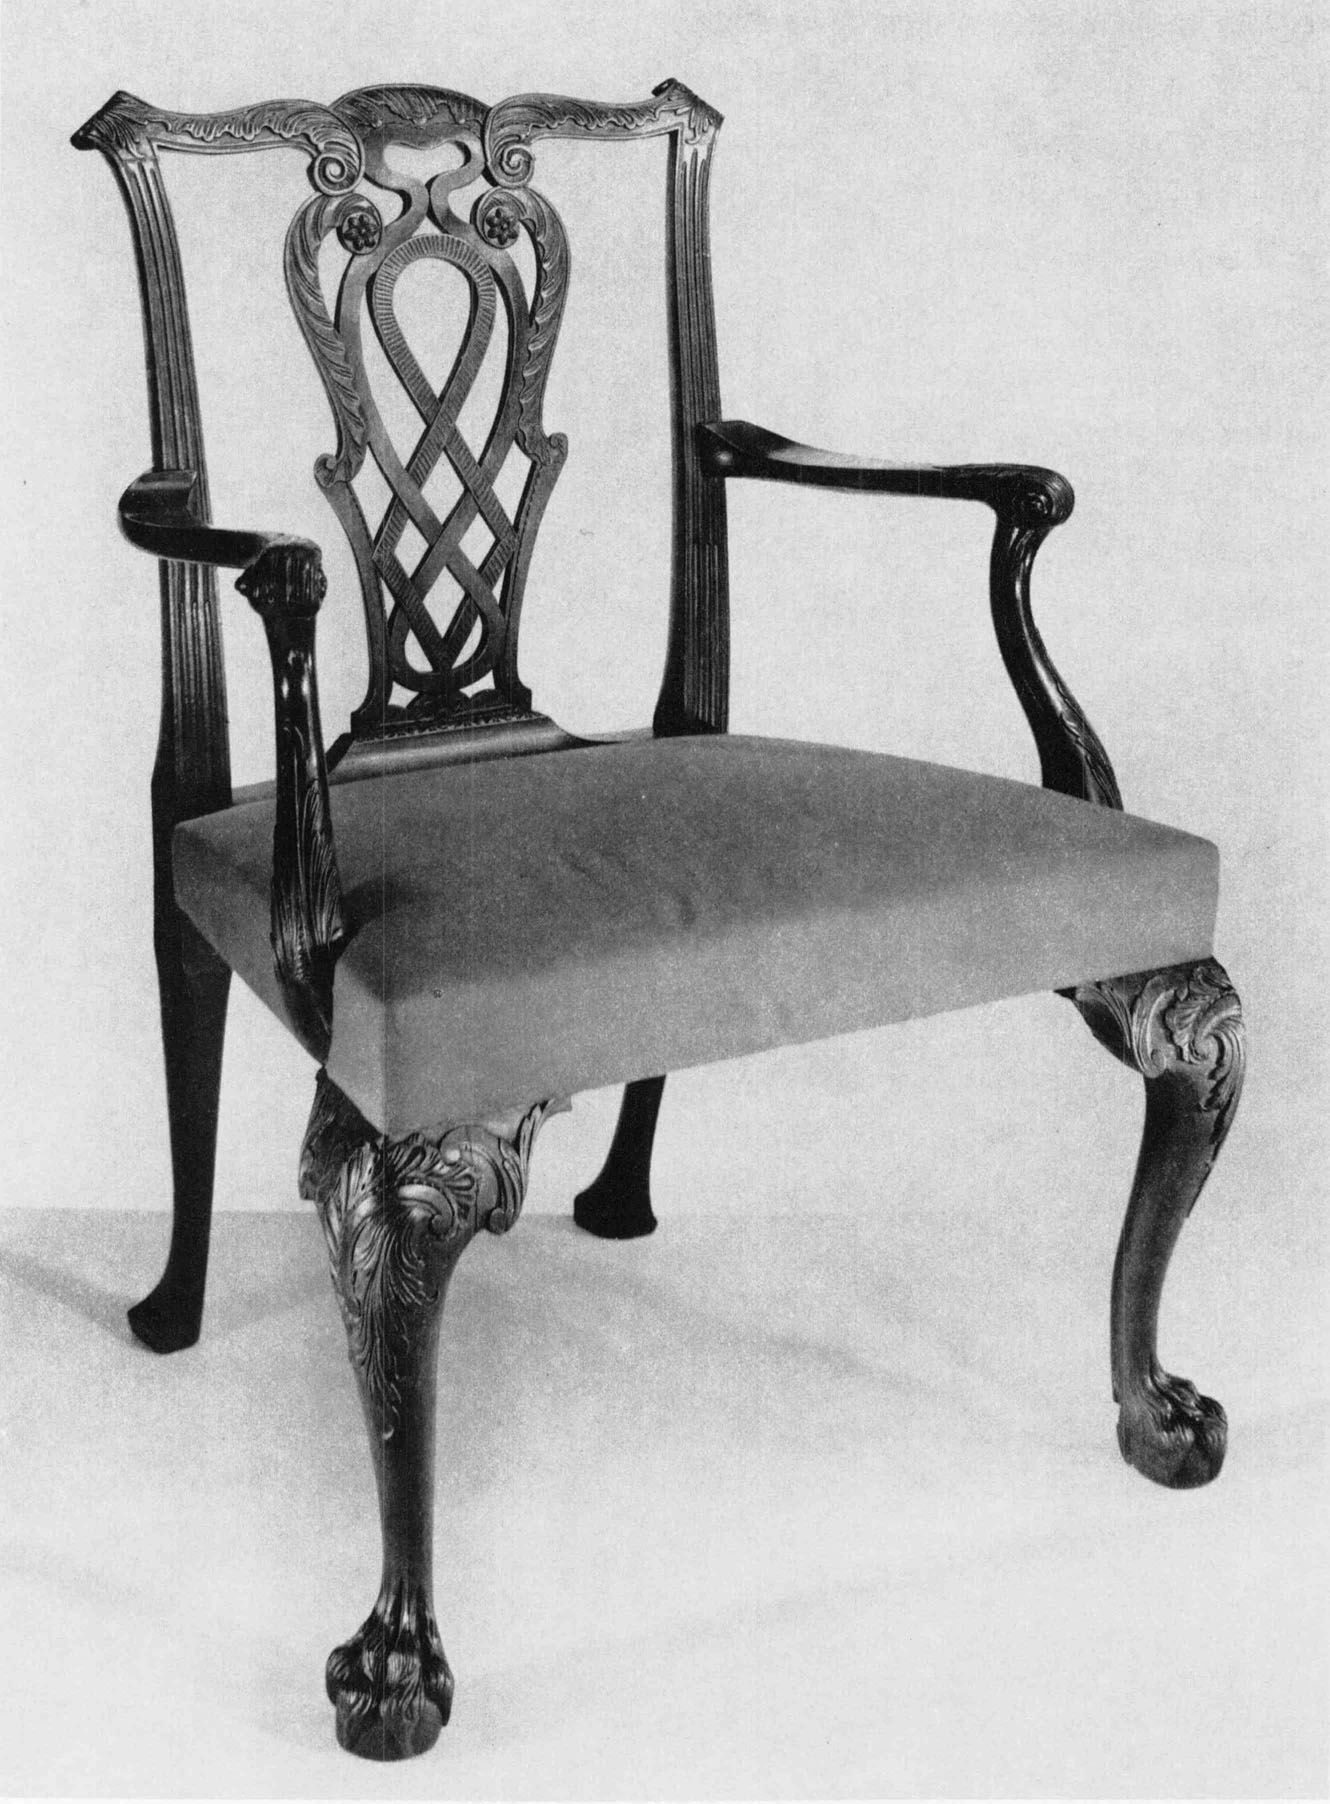 This israel sack american federal mahogany antique lolling arm chair - Armchair England C 1760 1780 Mahogany And Beech H 37 Inches W 25 Inches D 20 Inches The Henry Francis Du Pont Winterthur Museum